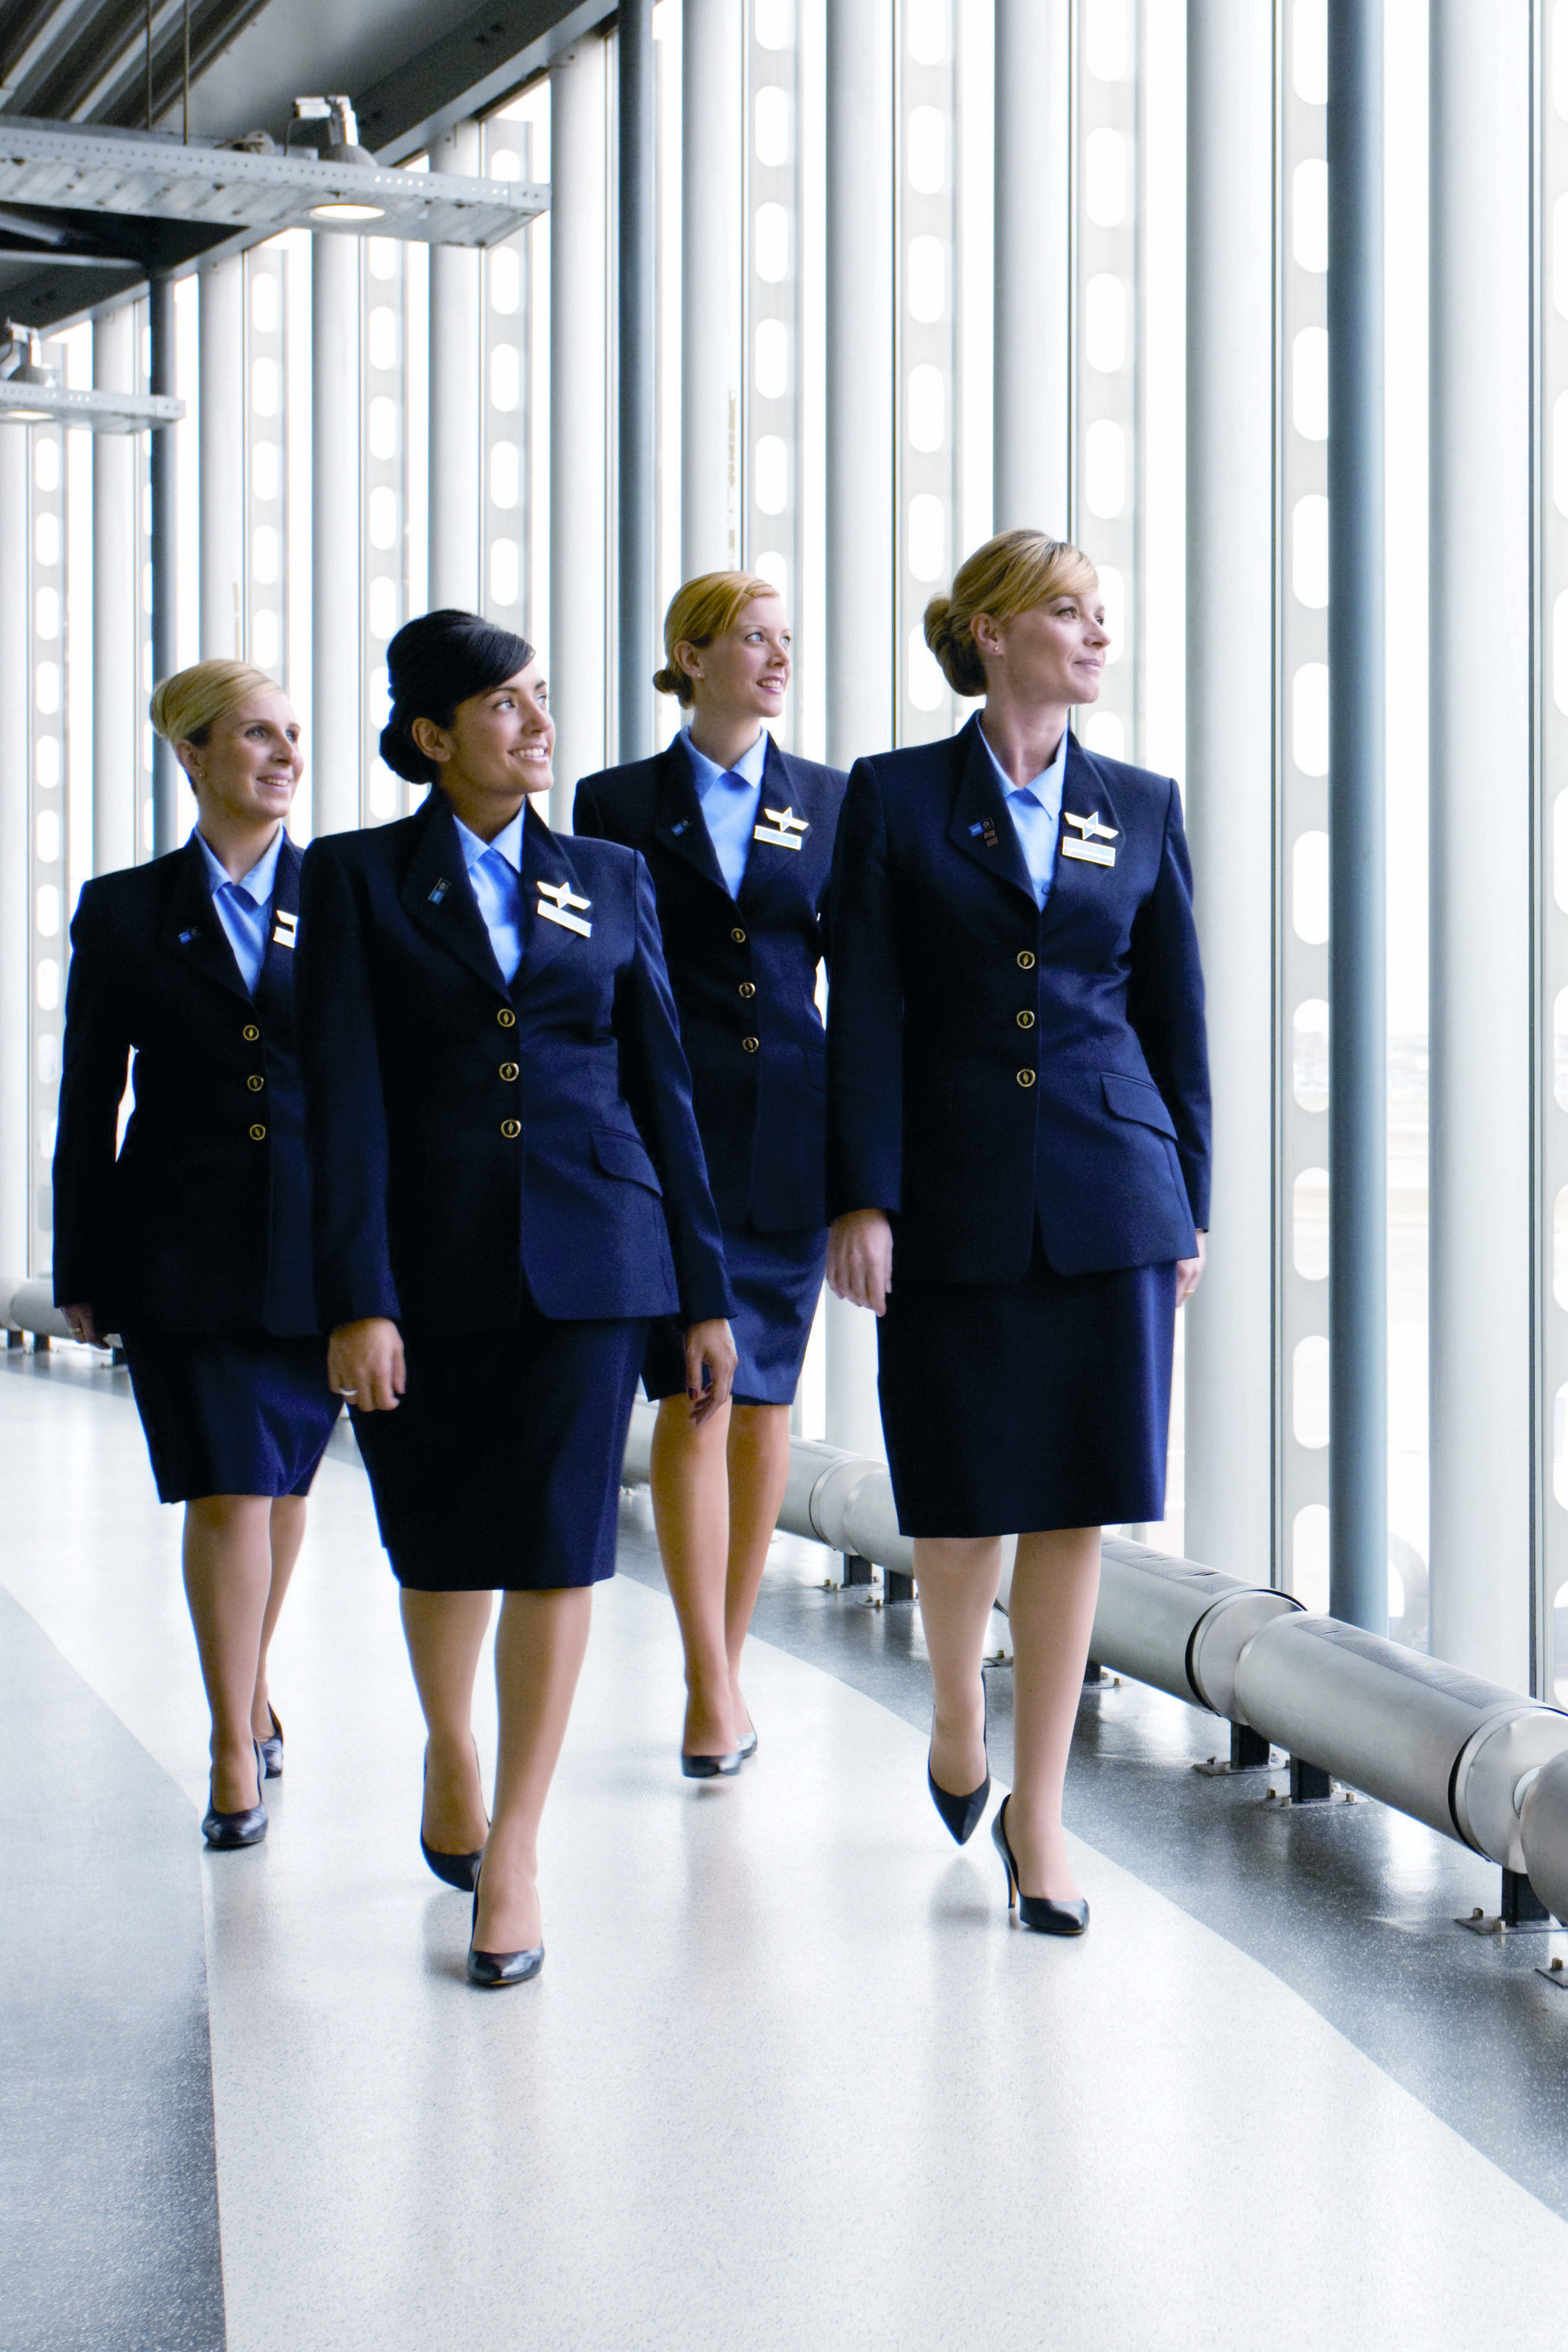 BMI Stewardess.